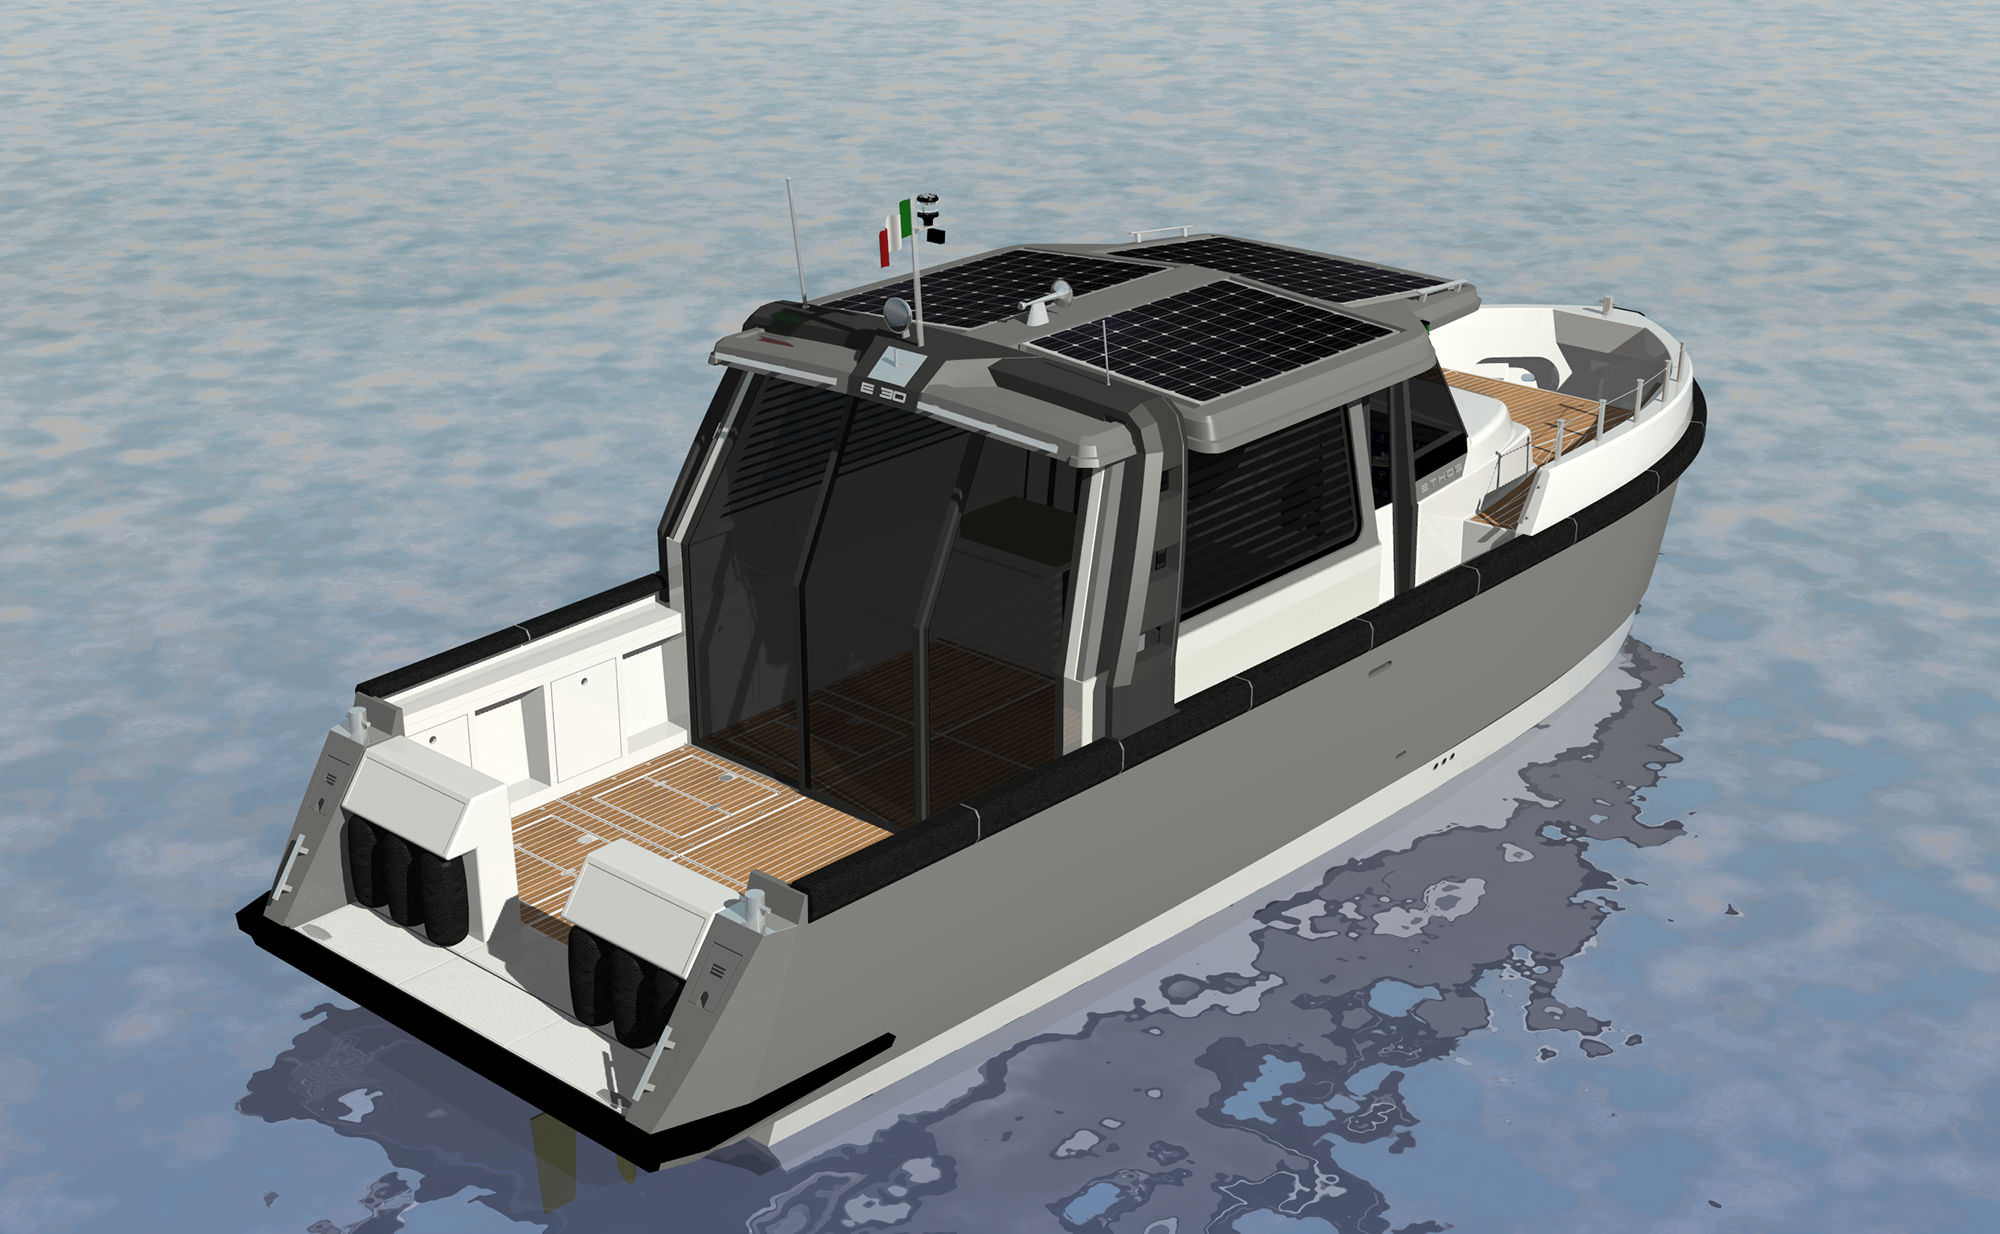 Attractive Solar Electric Powered Express Cruiser / Hybrid / Downeast / 12 Person Max.  ...